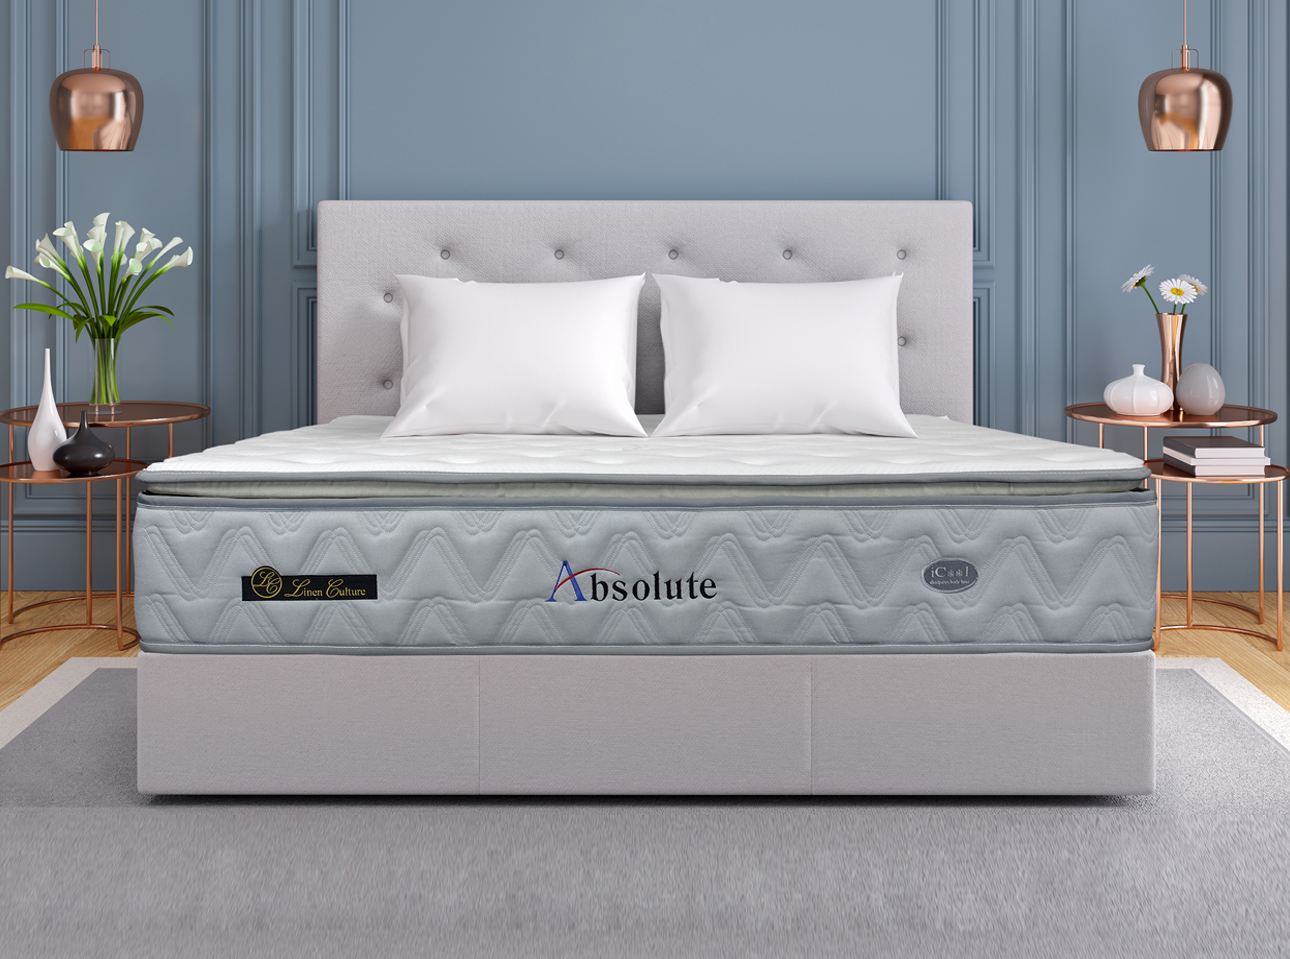 Absolute mattress features bonnel spring for a more relaxed support configuration